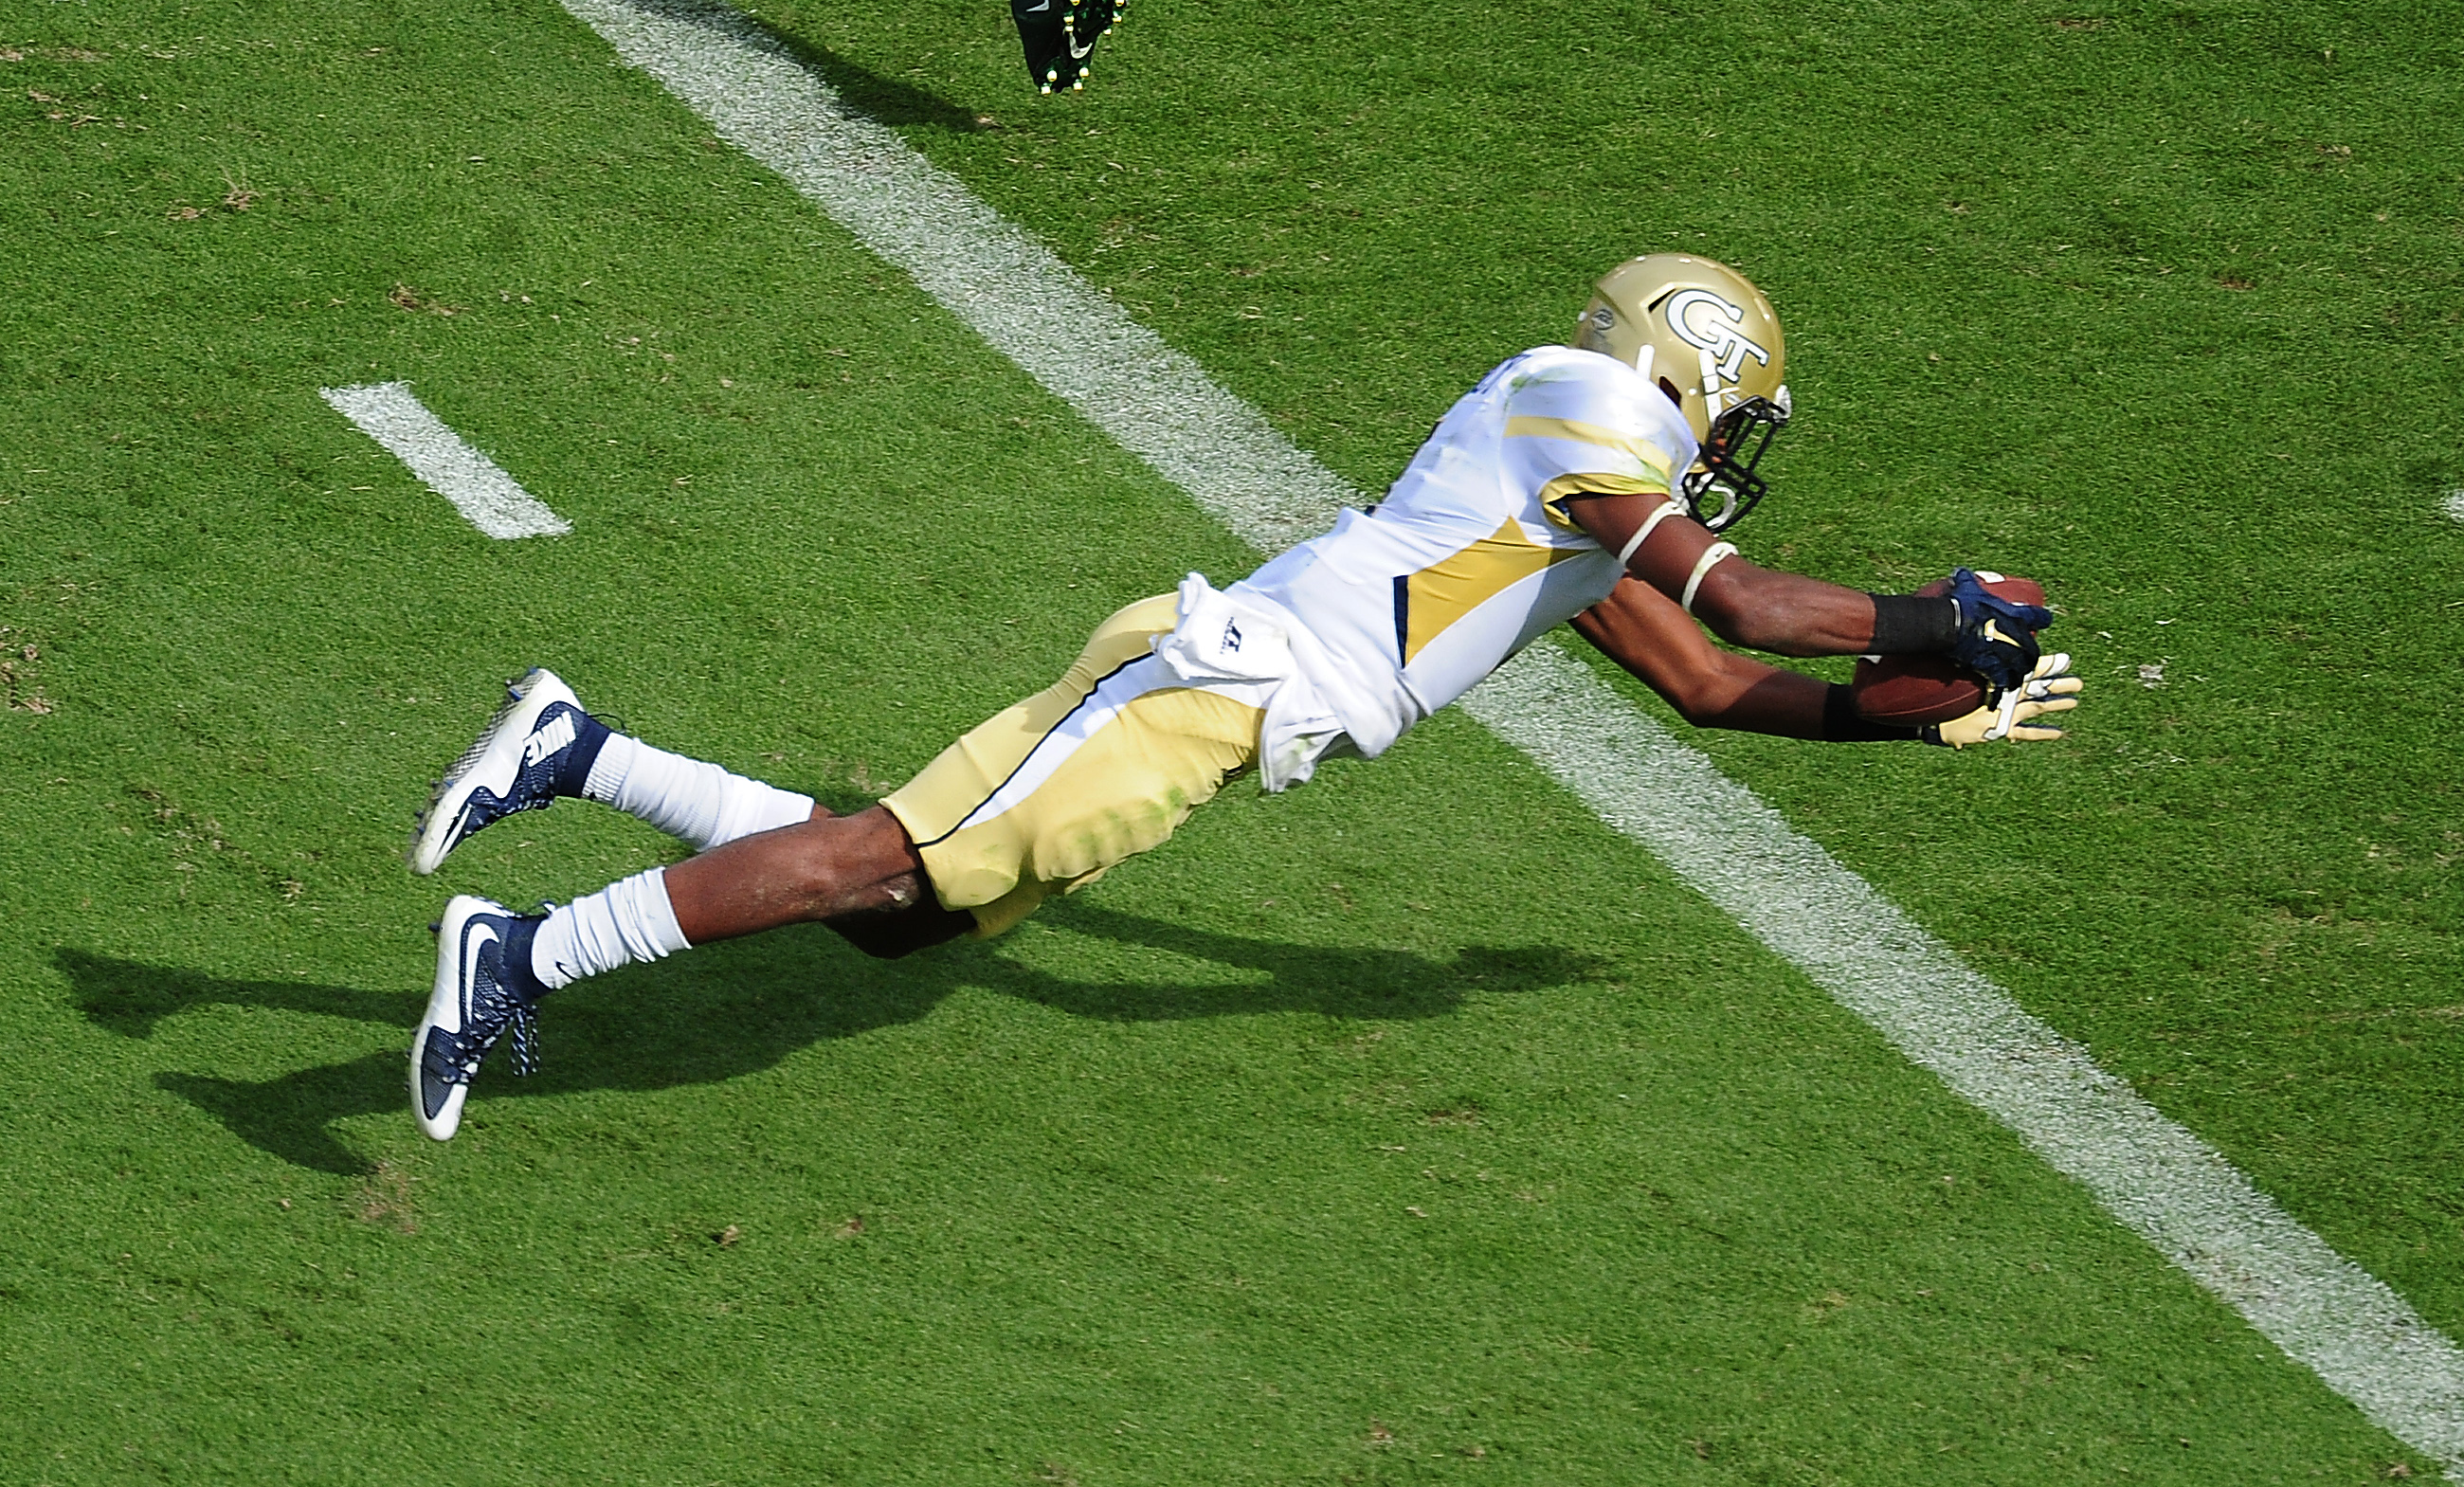 ATLANTA, GA - SEPTEMBER 12: Qua Searcy #1 of the Georgia Tech Yellow Jackets dives across the goal line for a second quarter touchdown against the Tulane Green Wave on September 12, 2015 at Bobby Dodd Stadium in Atlanta, Georgia. (Photo by Scott Cunningham/Getty Images)